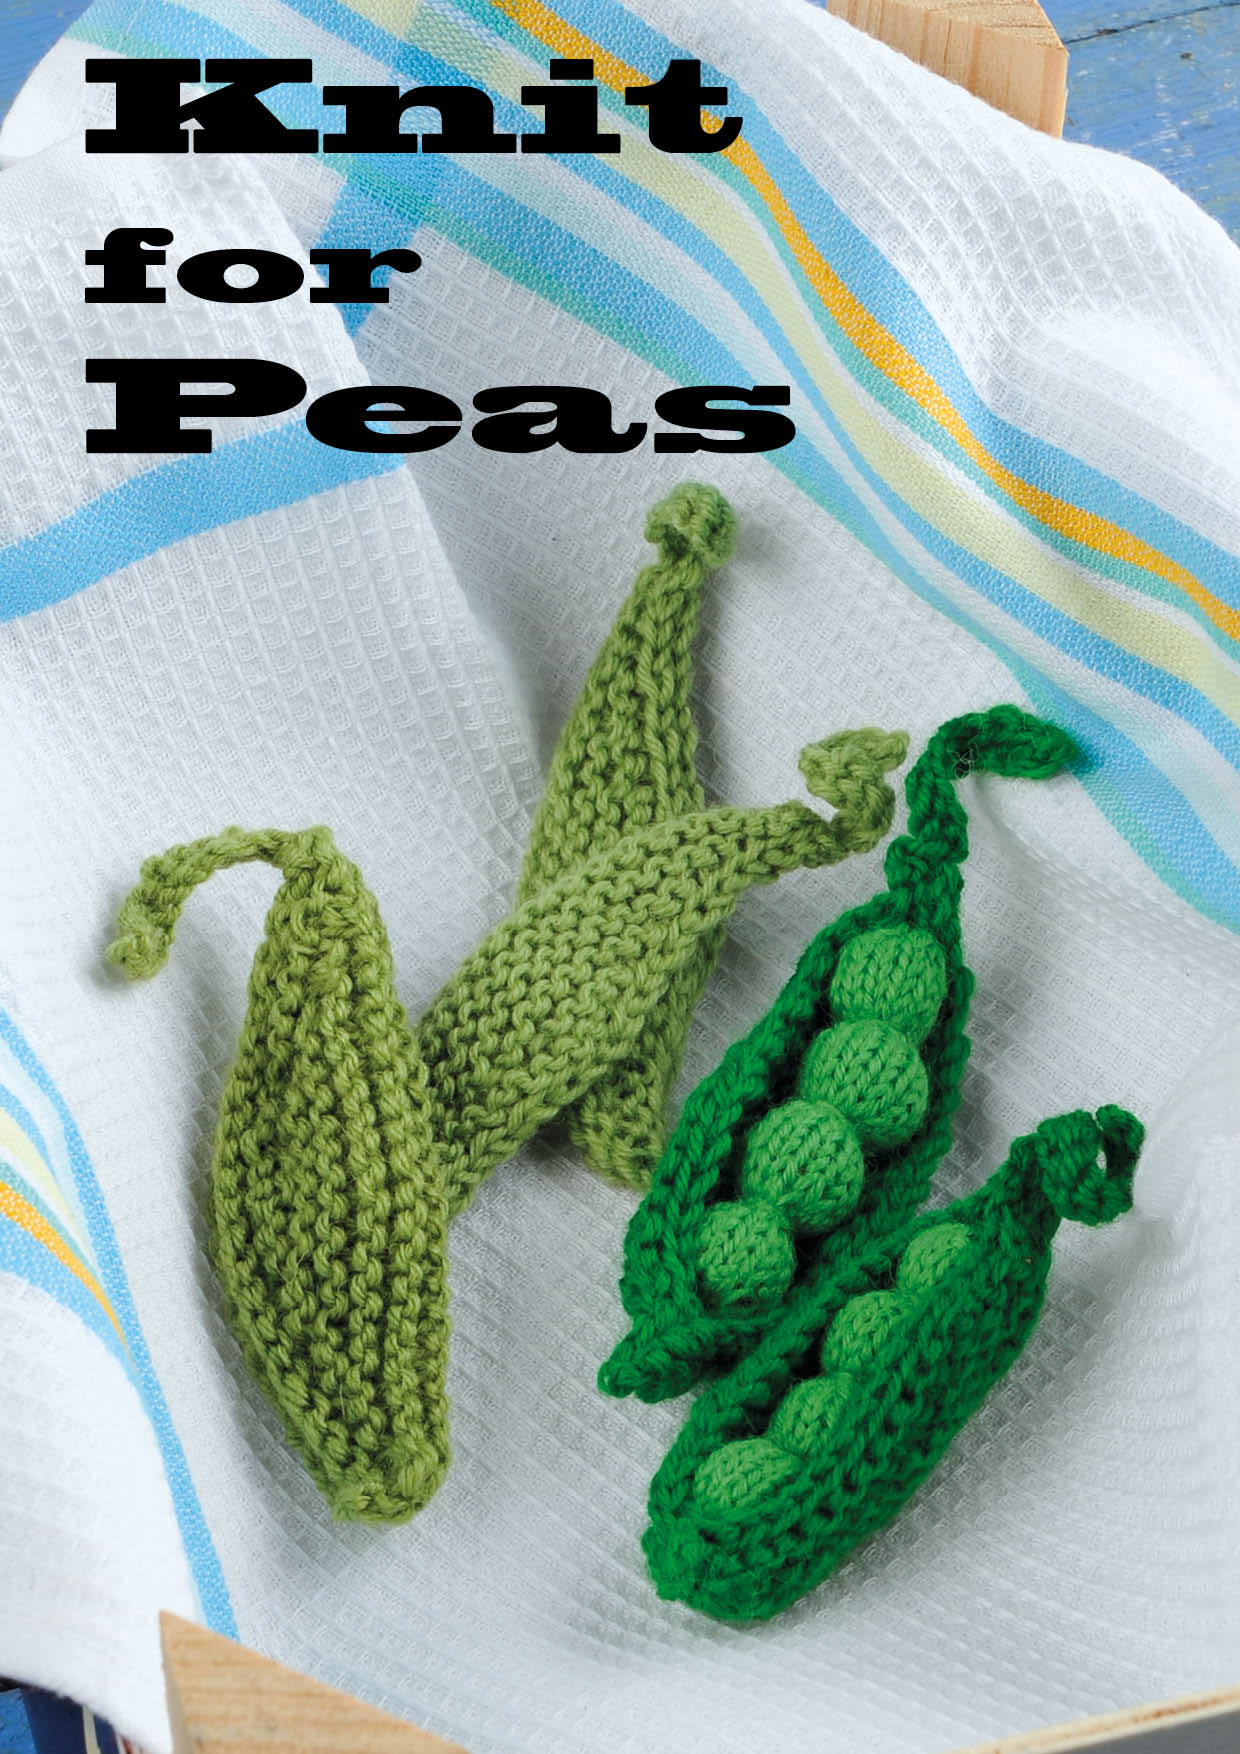 knitforpeas